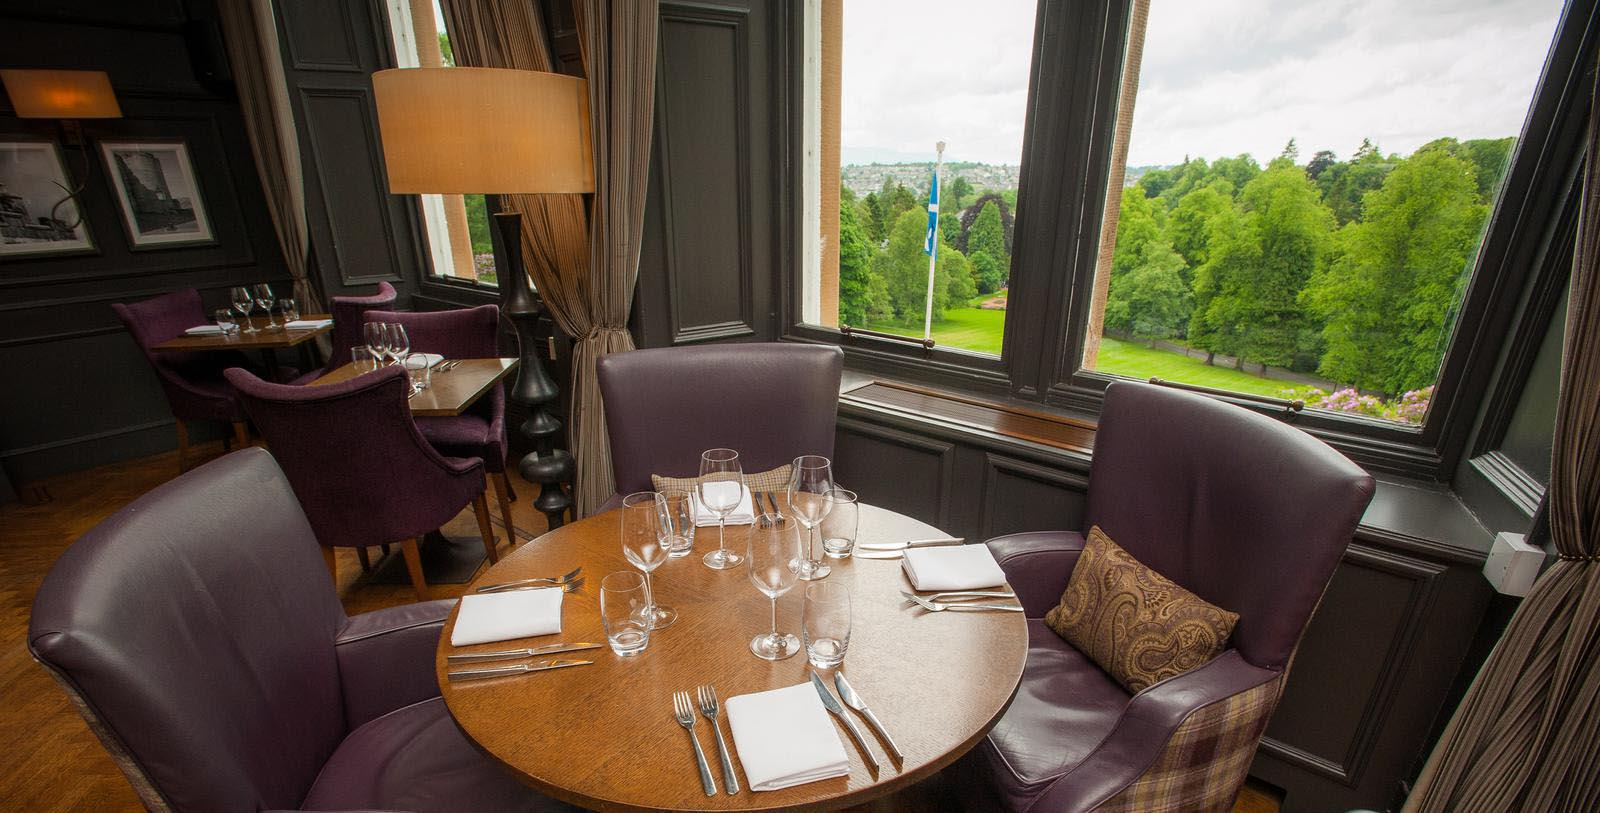 Image of hotel restaurant seating area DoubleTree by Hilton Hotel Dunblane Hydro, 1878, Member of Historic Hotels Worldwide, in Dunblane, Scotland, Explore